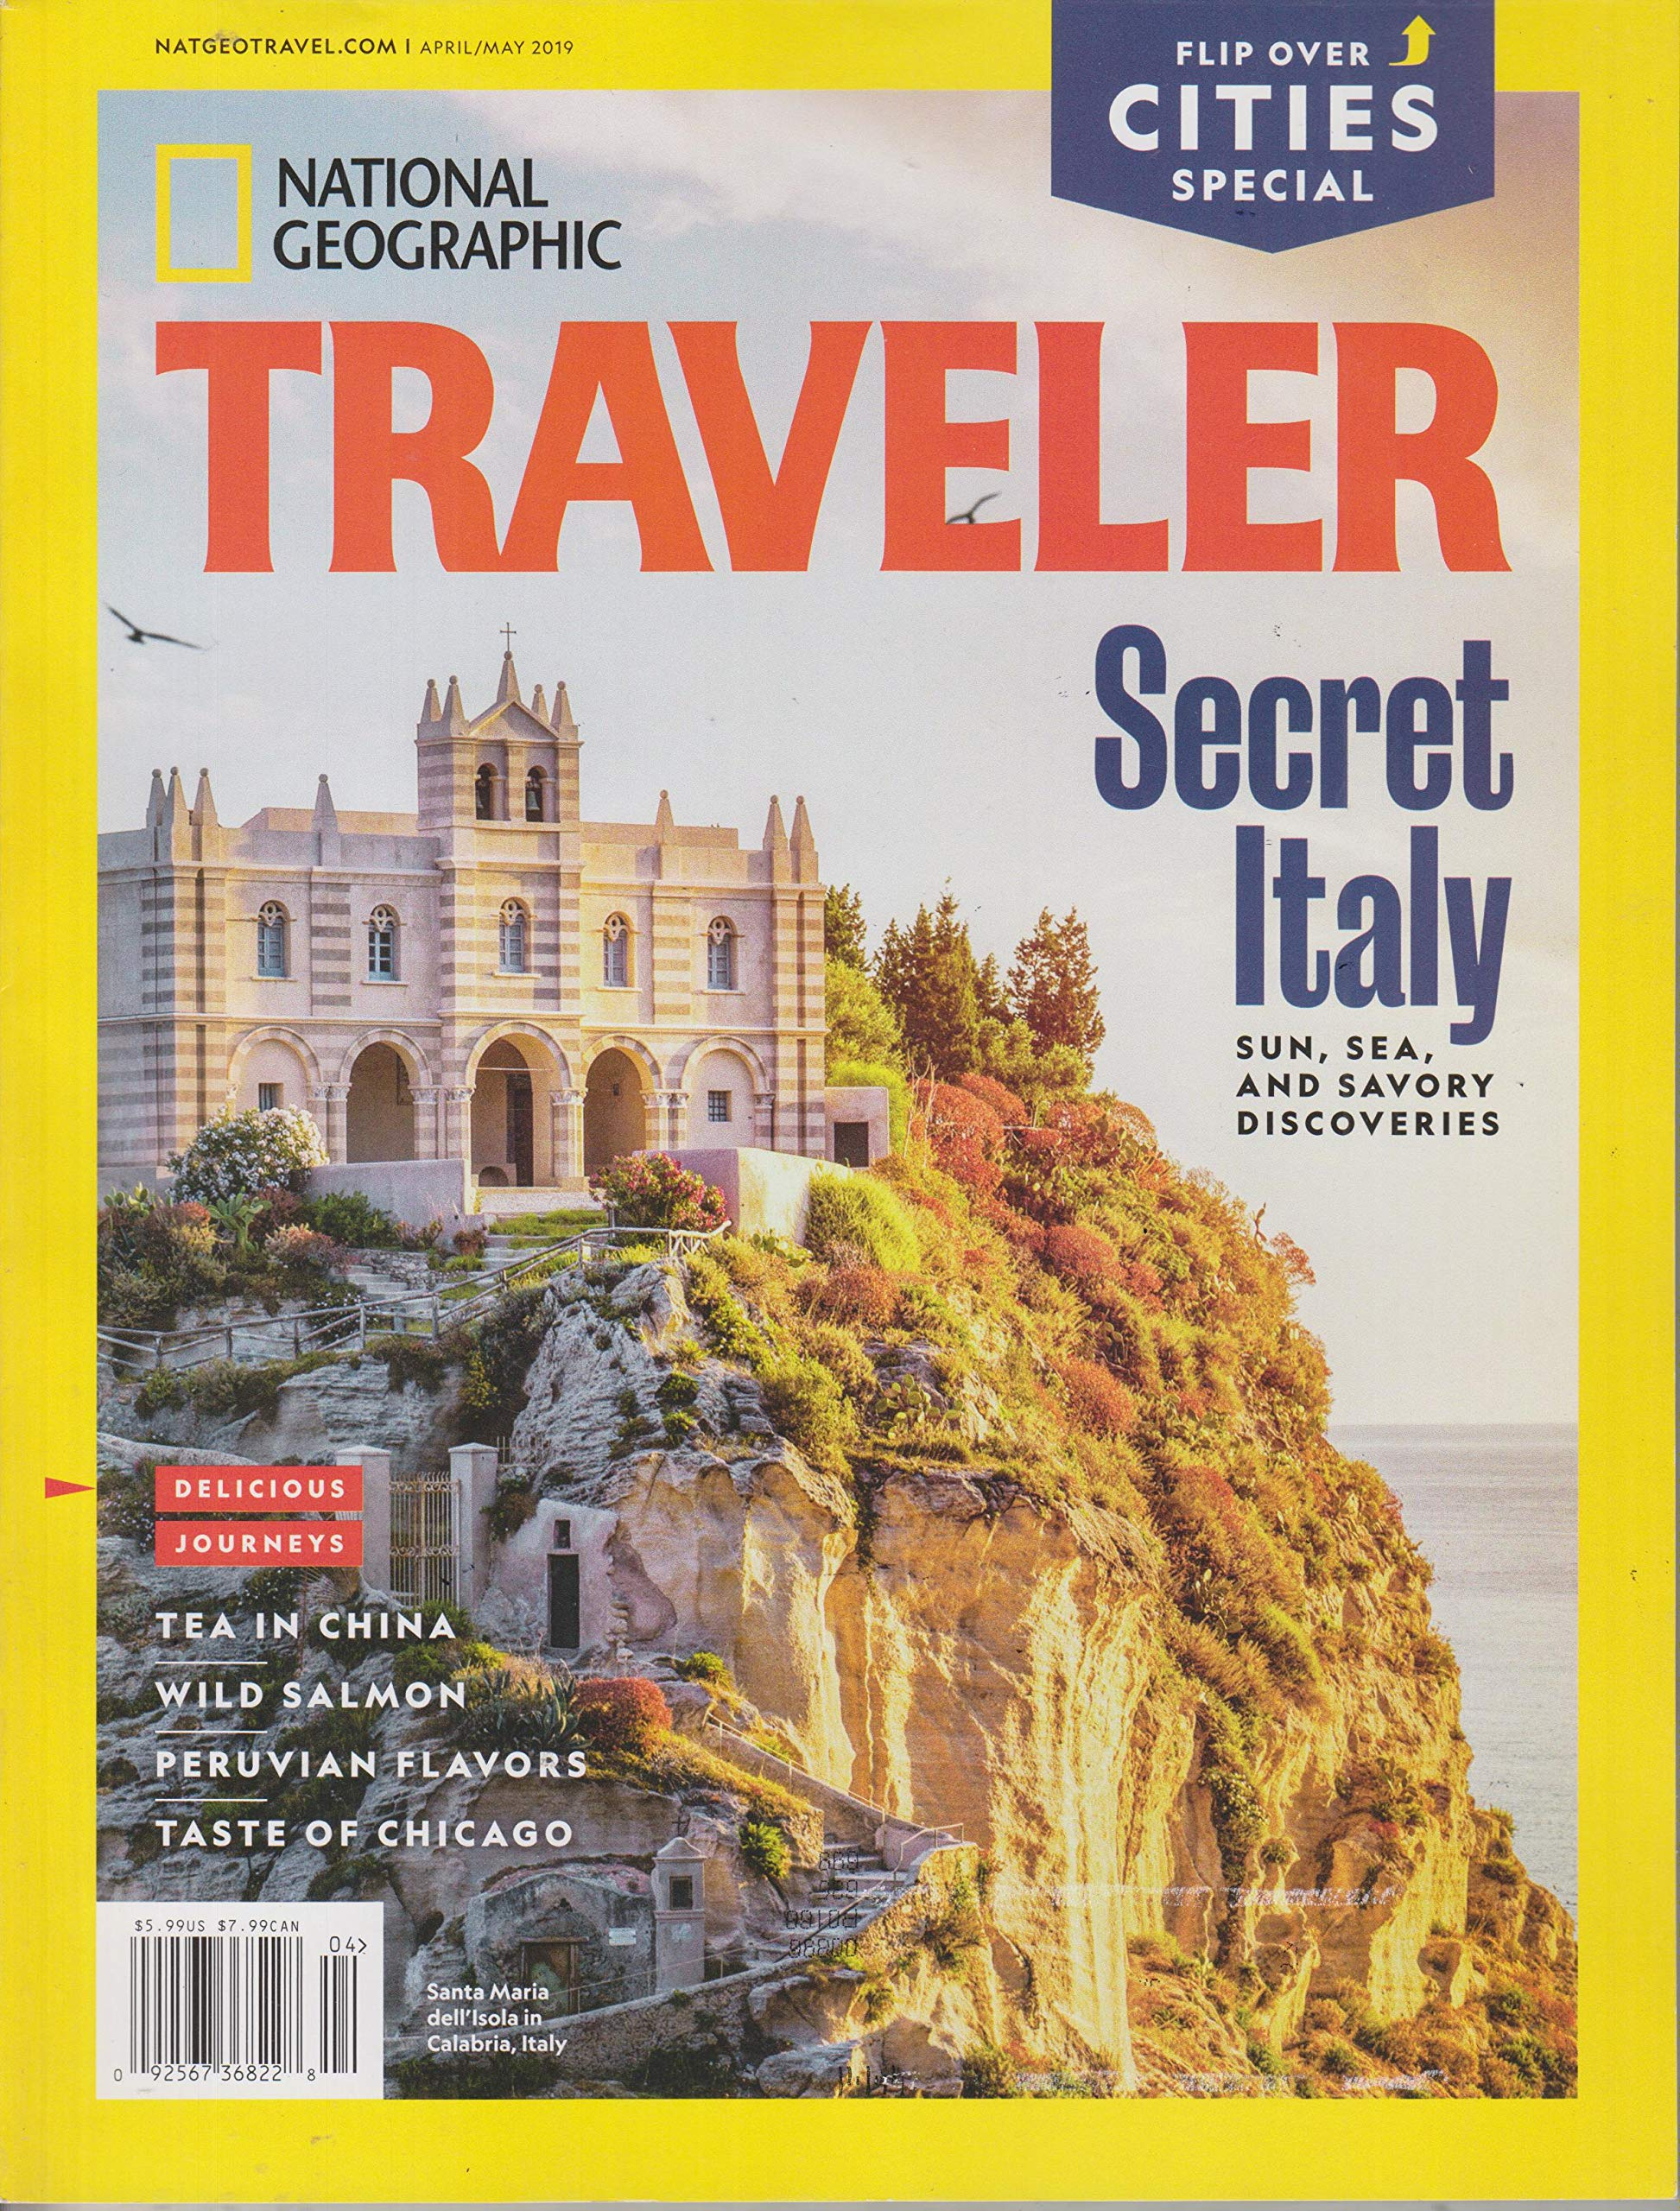 National Geographic Traveler April/May 2019 Secret Italy / City